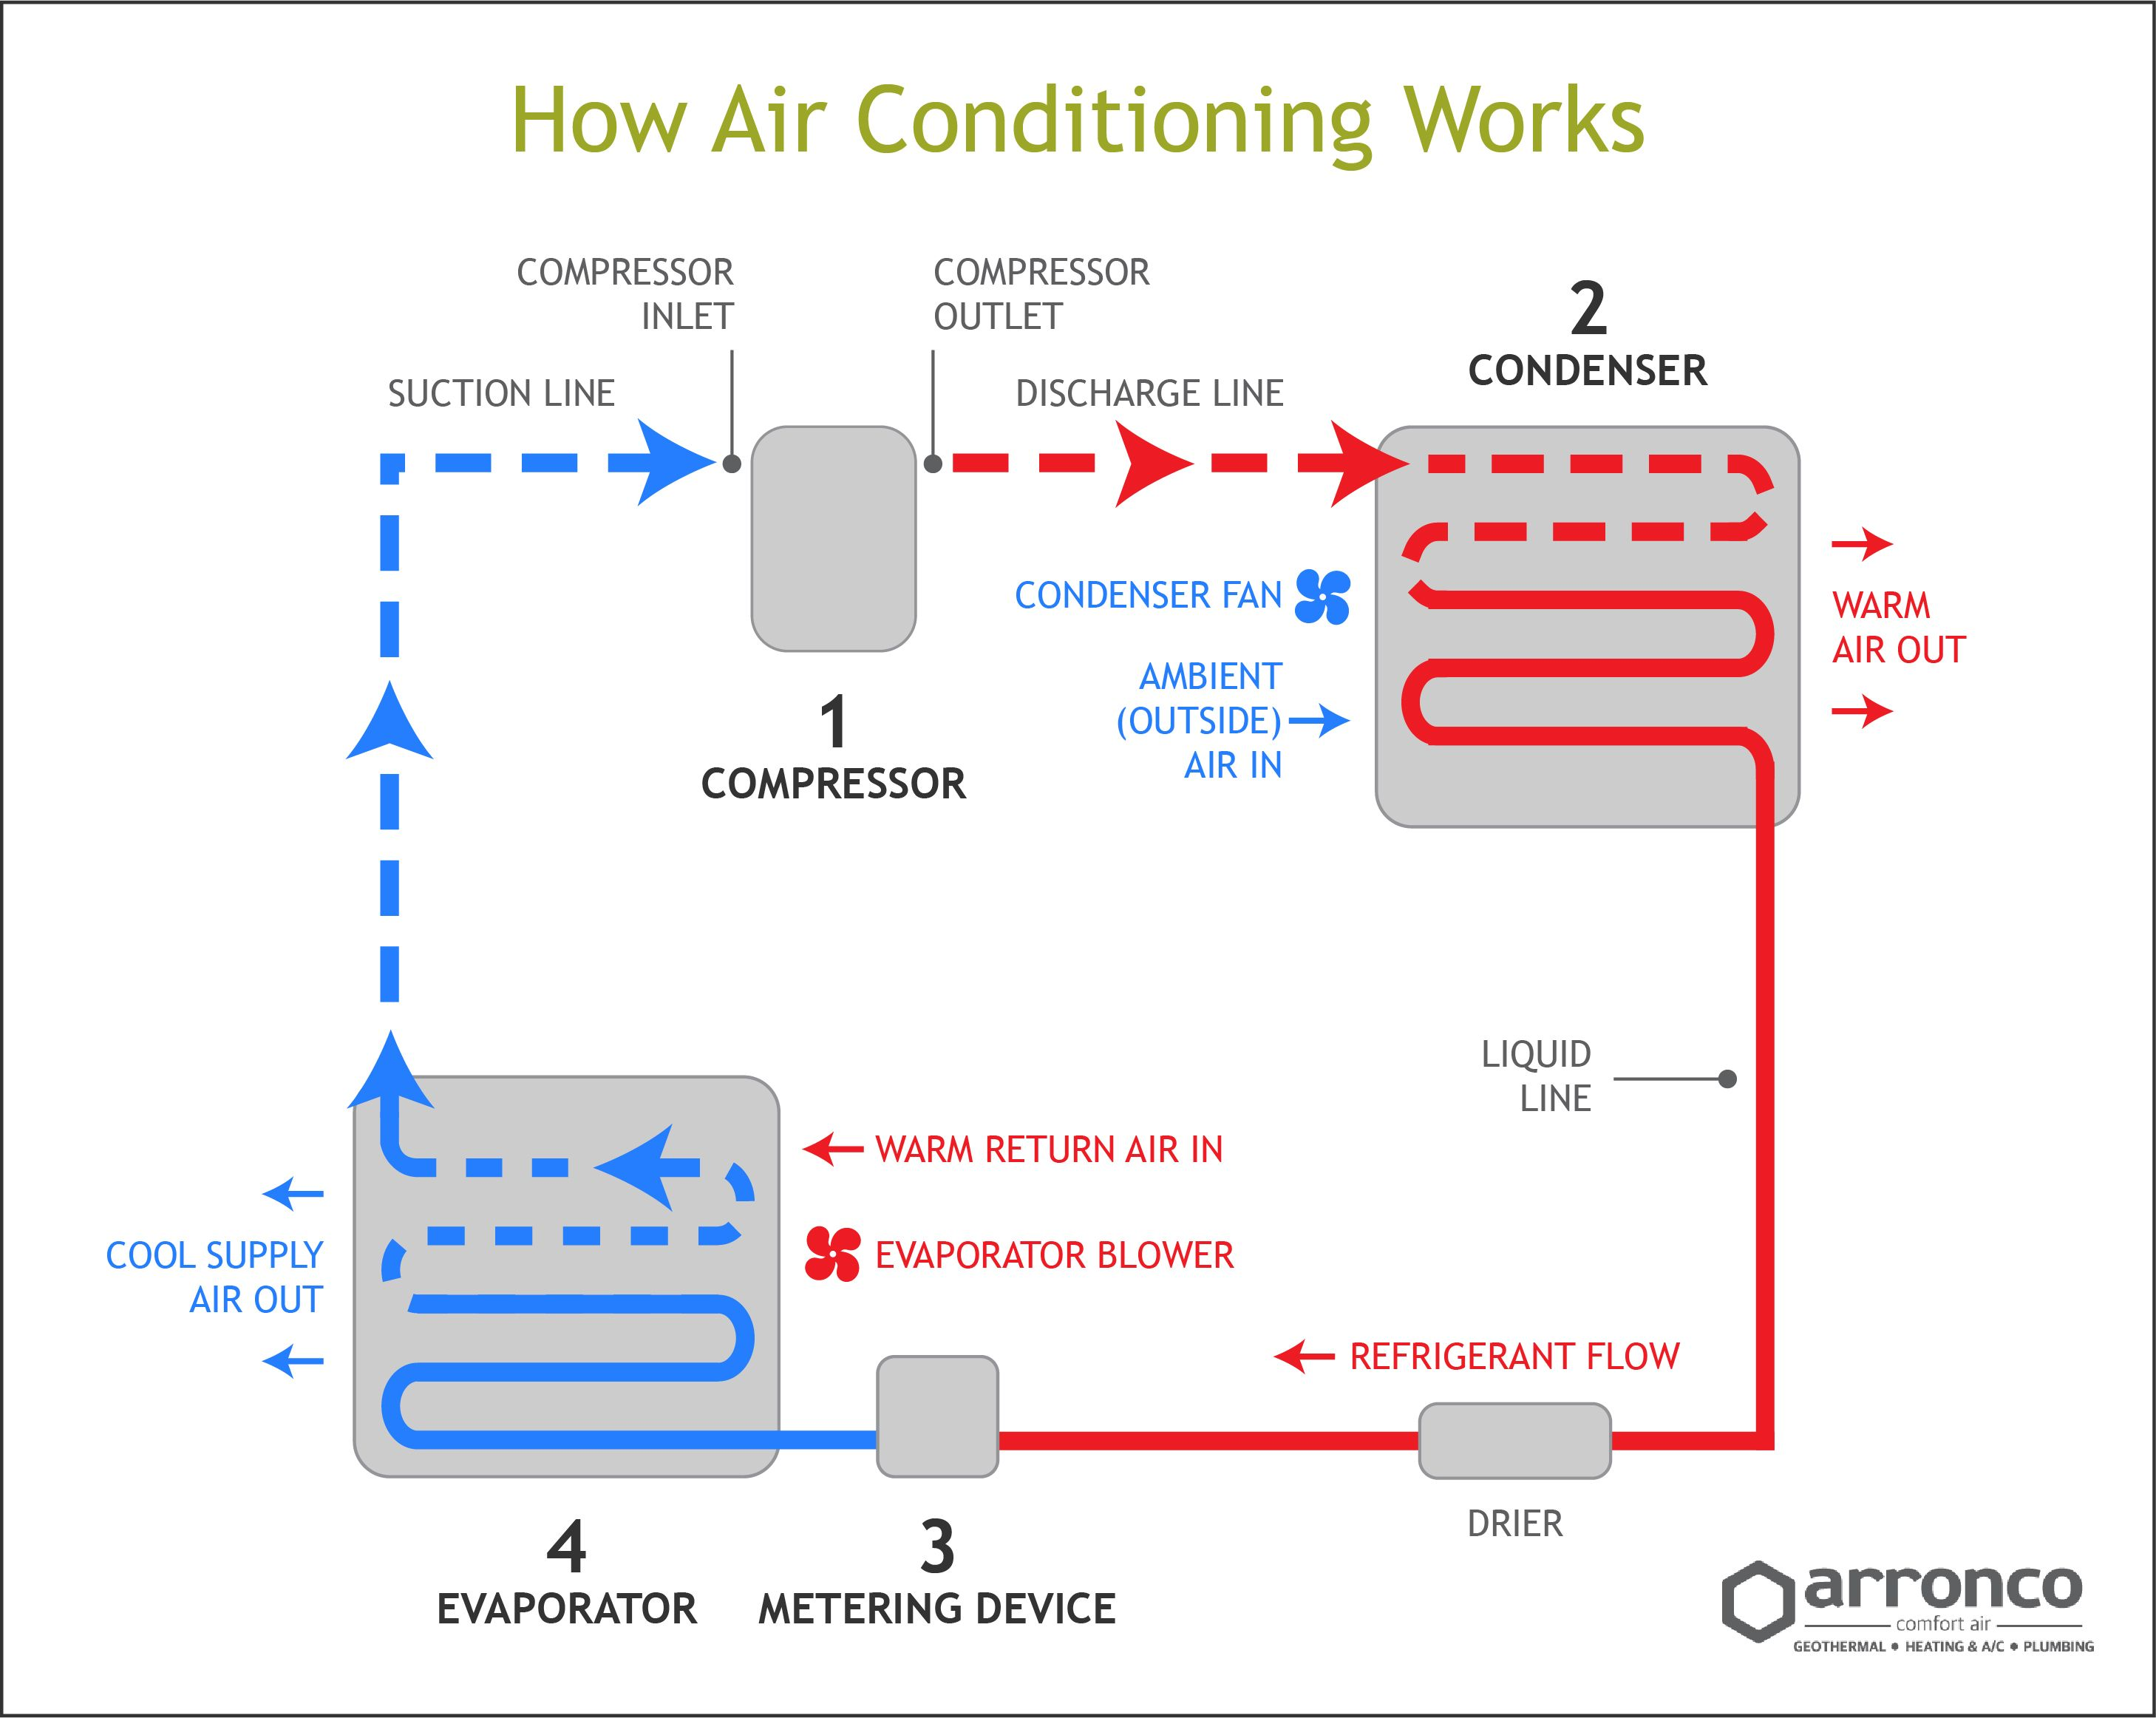 How air conditioning works, the refrigeration cycle